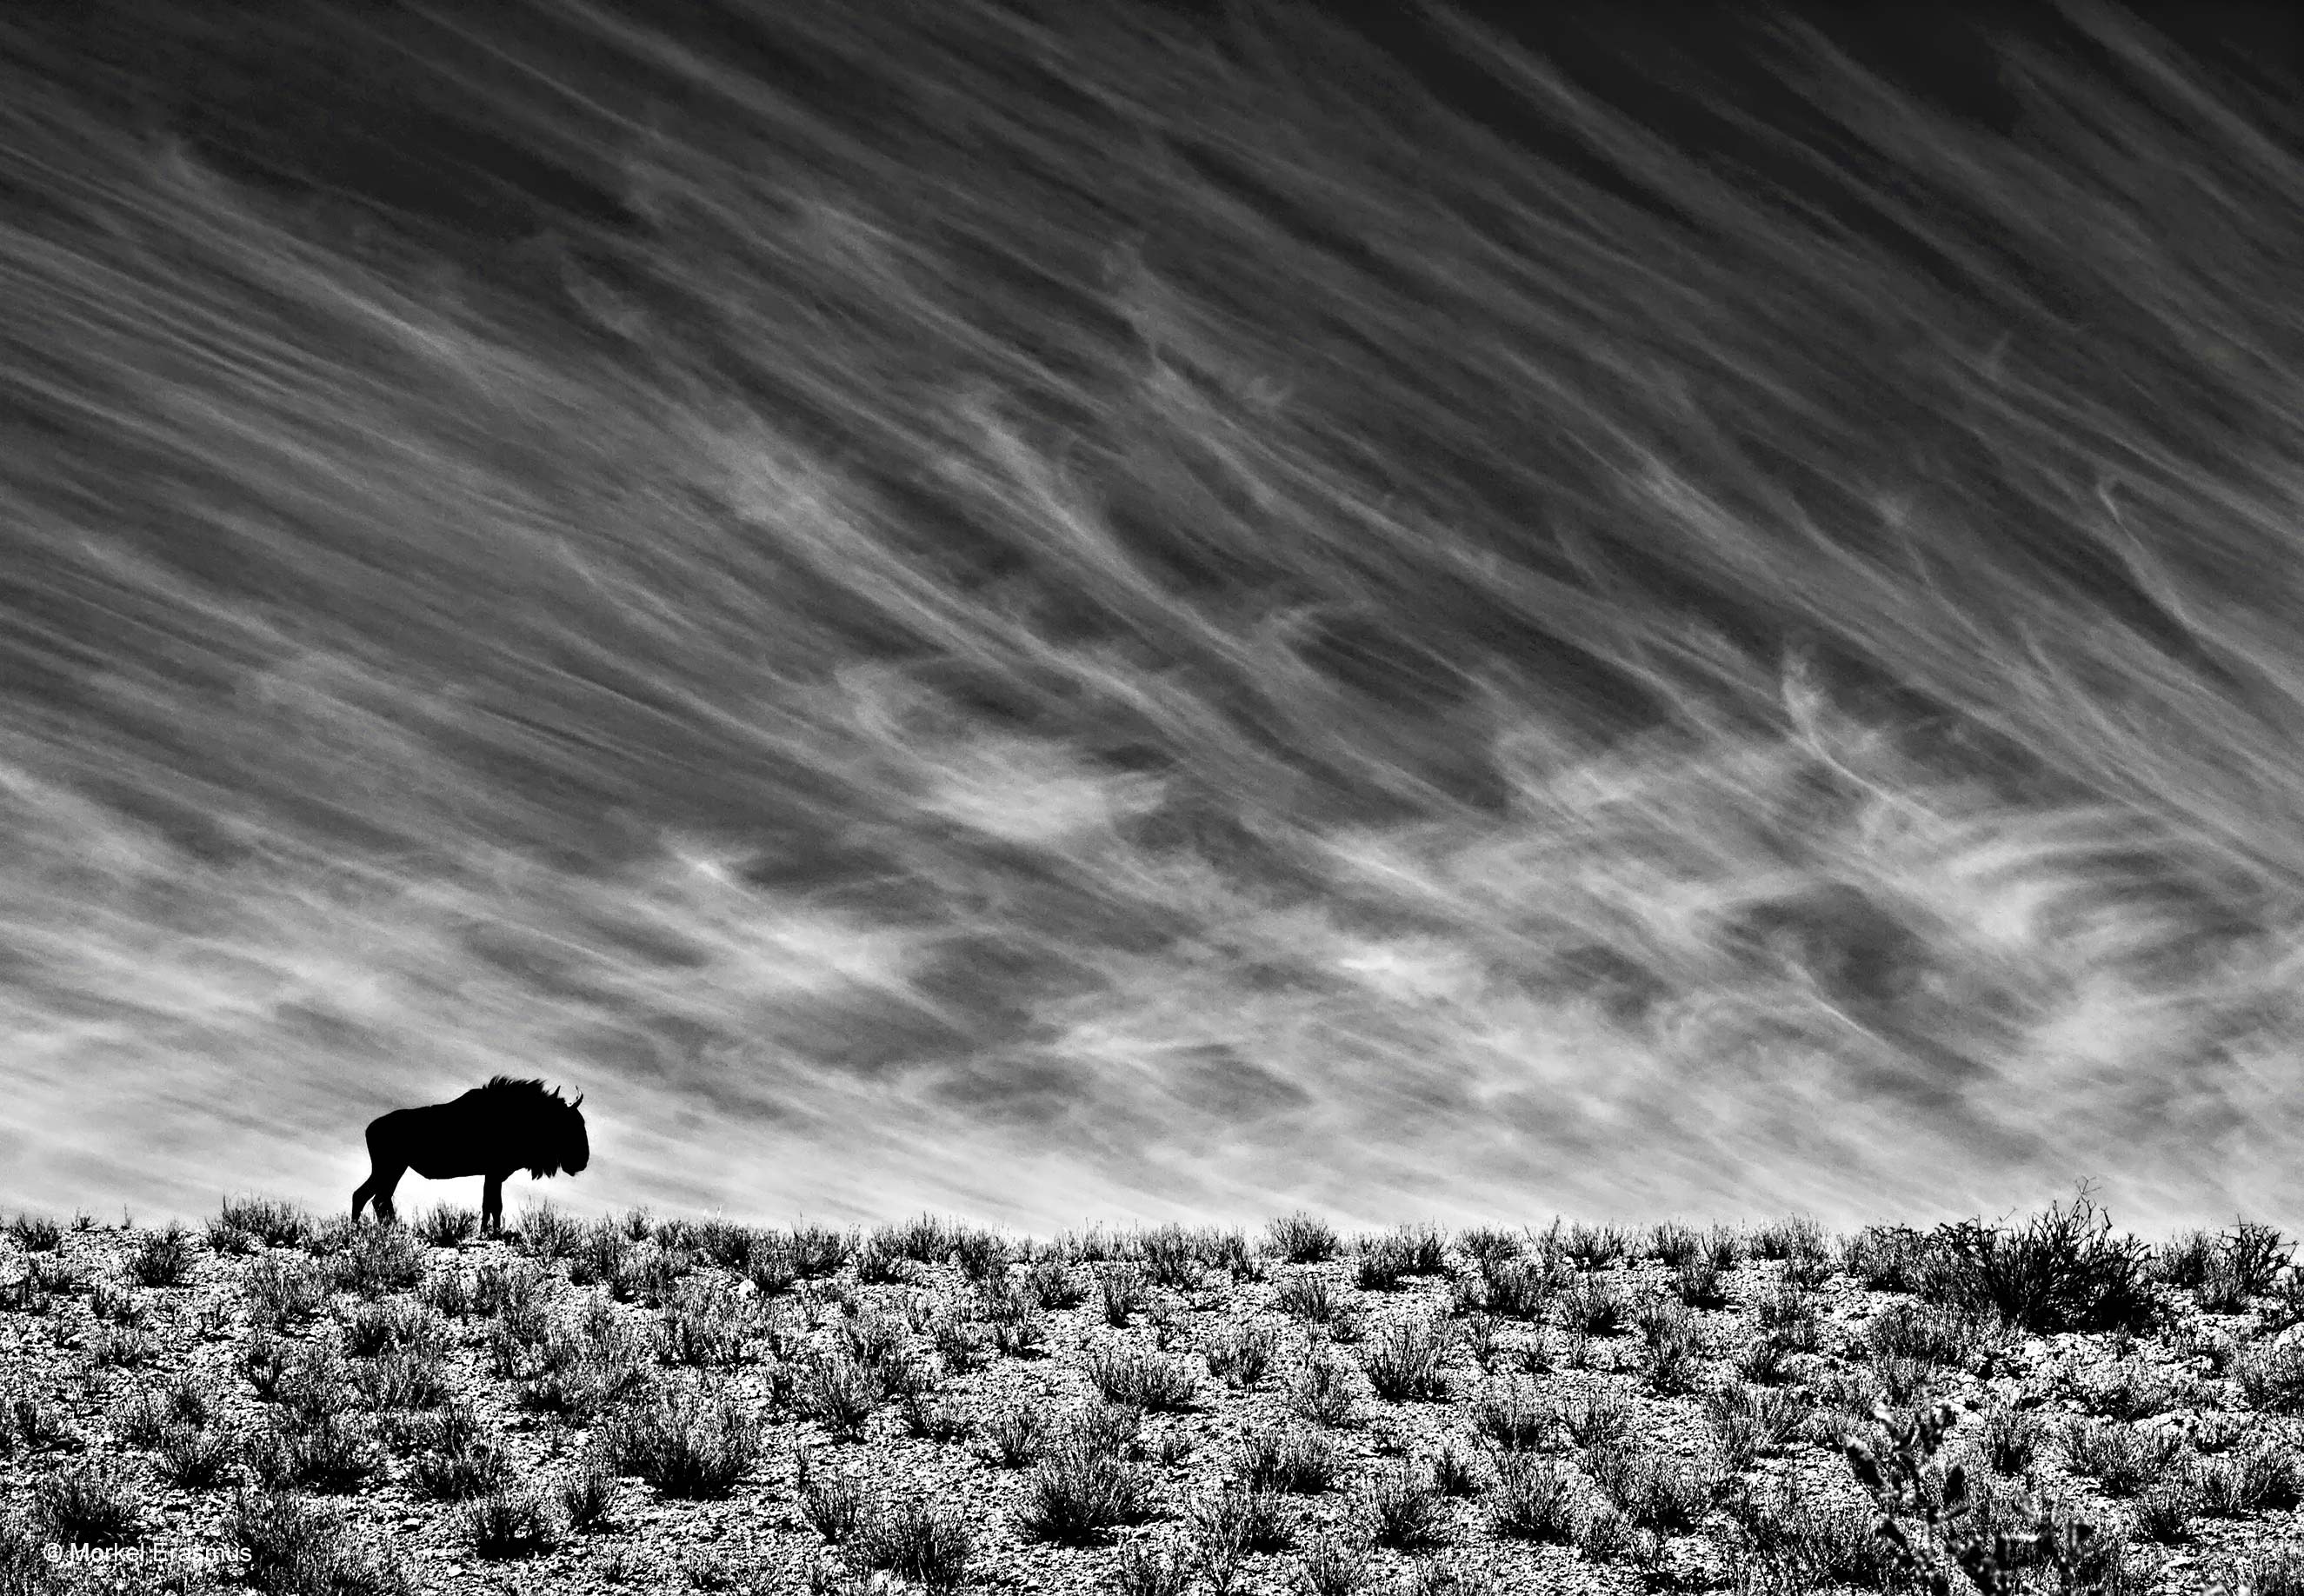 Desert survivor morkel erasmus nature in black white